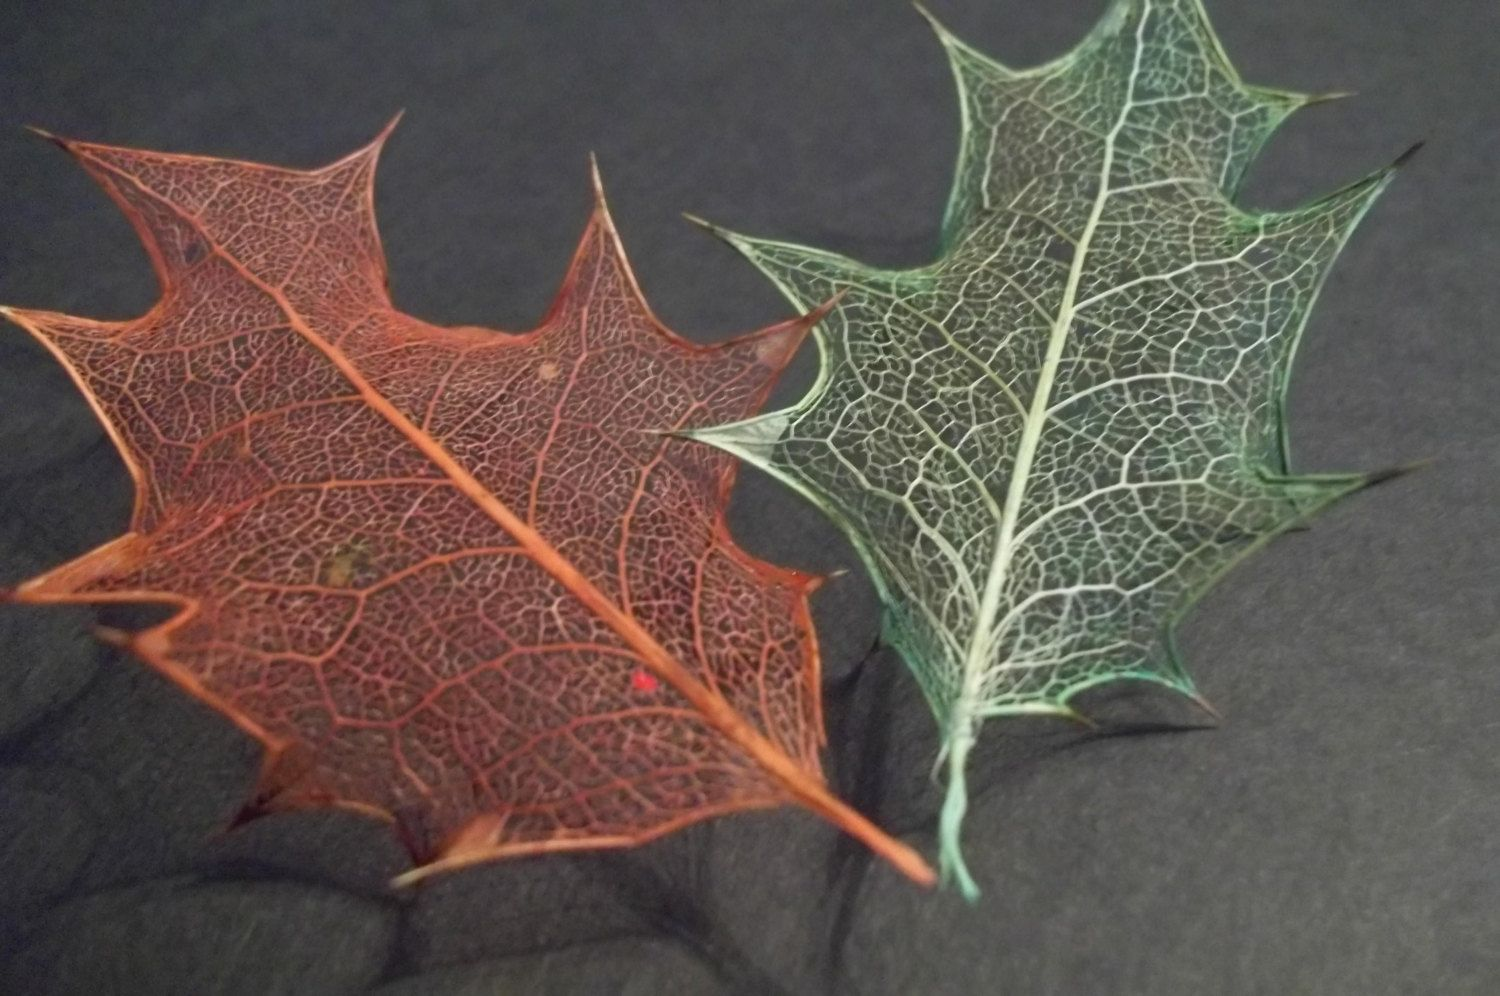 Six Holly Leaf Skeletons Dyed All Yellow Or Three Red